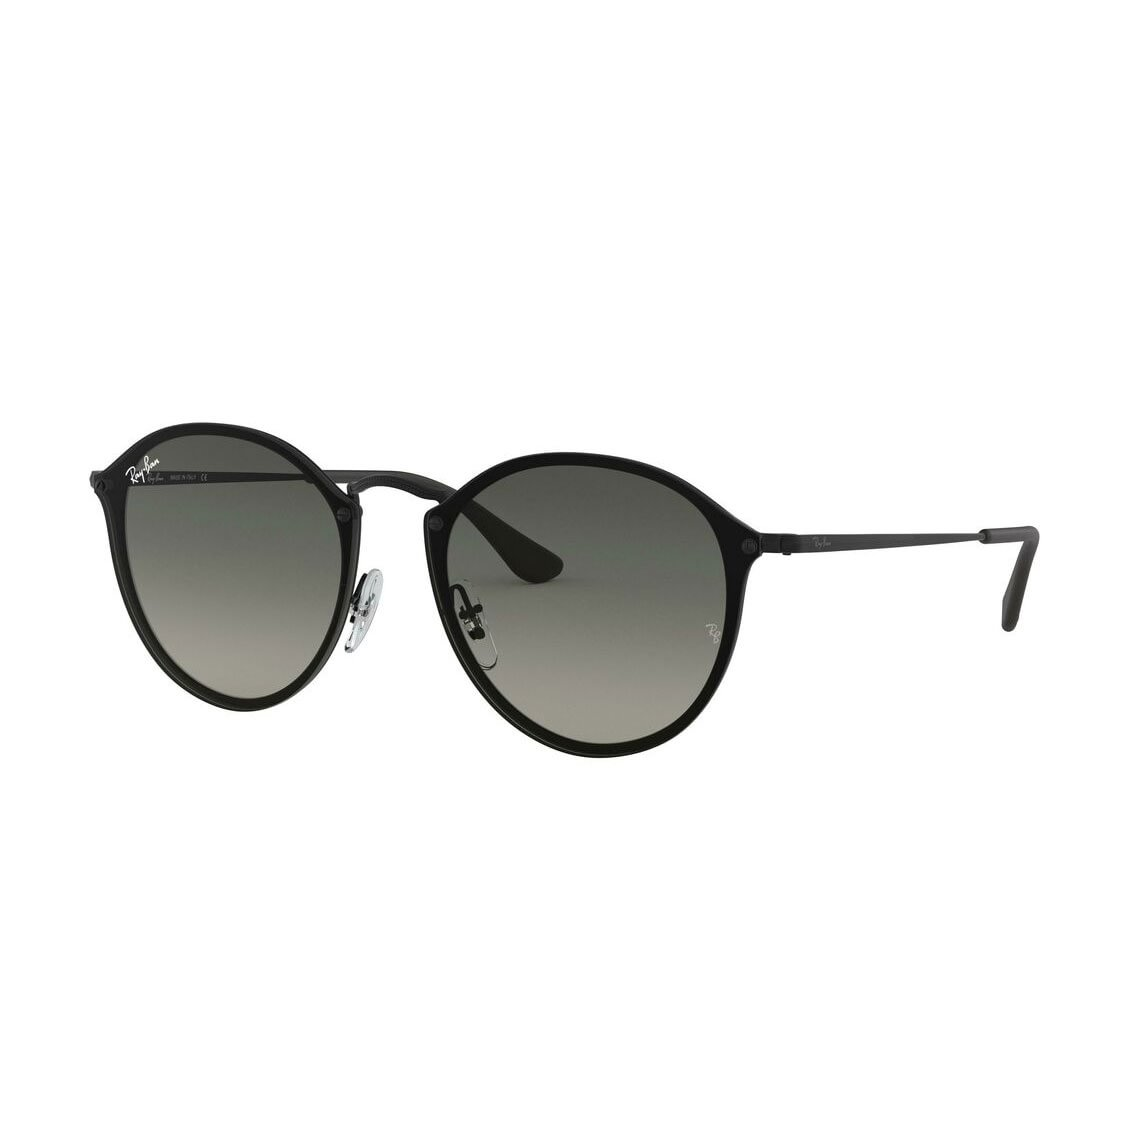 Ray-Ban Blaze round RB3574N 153/11 59